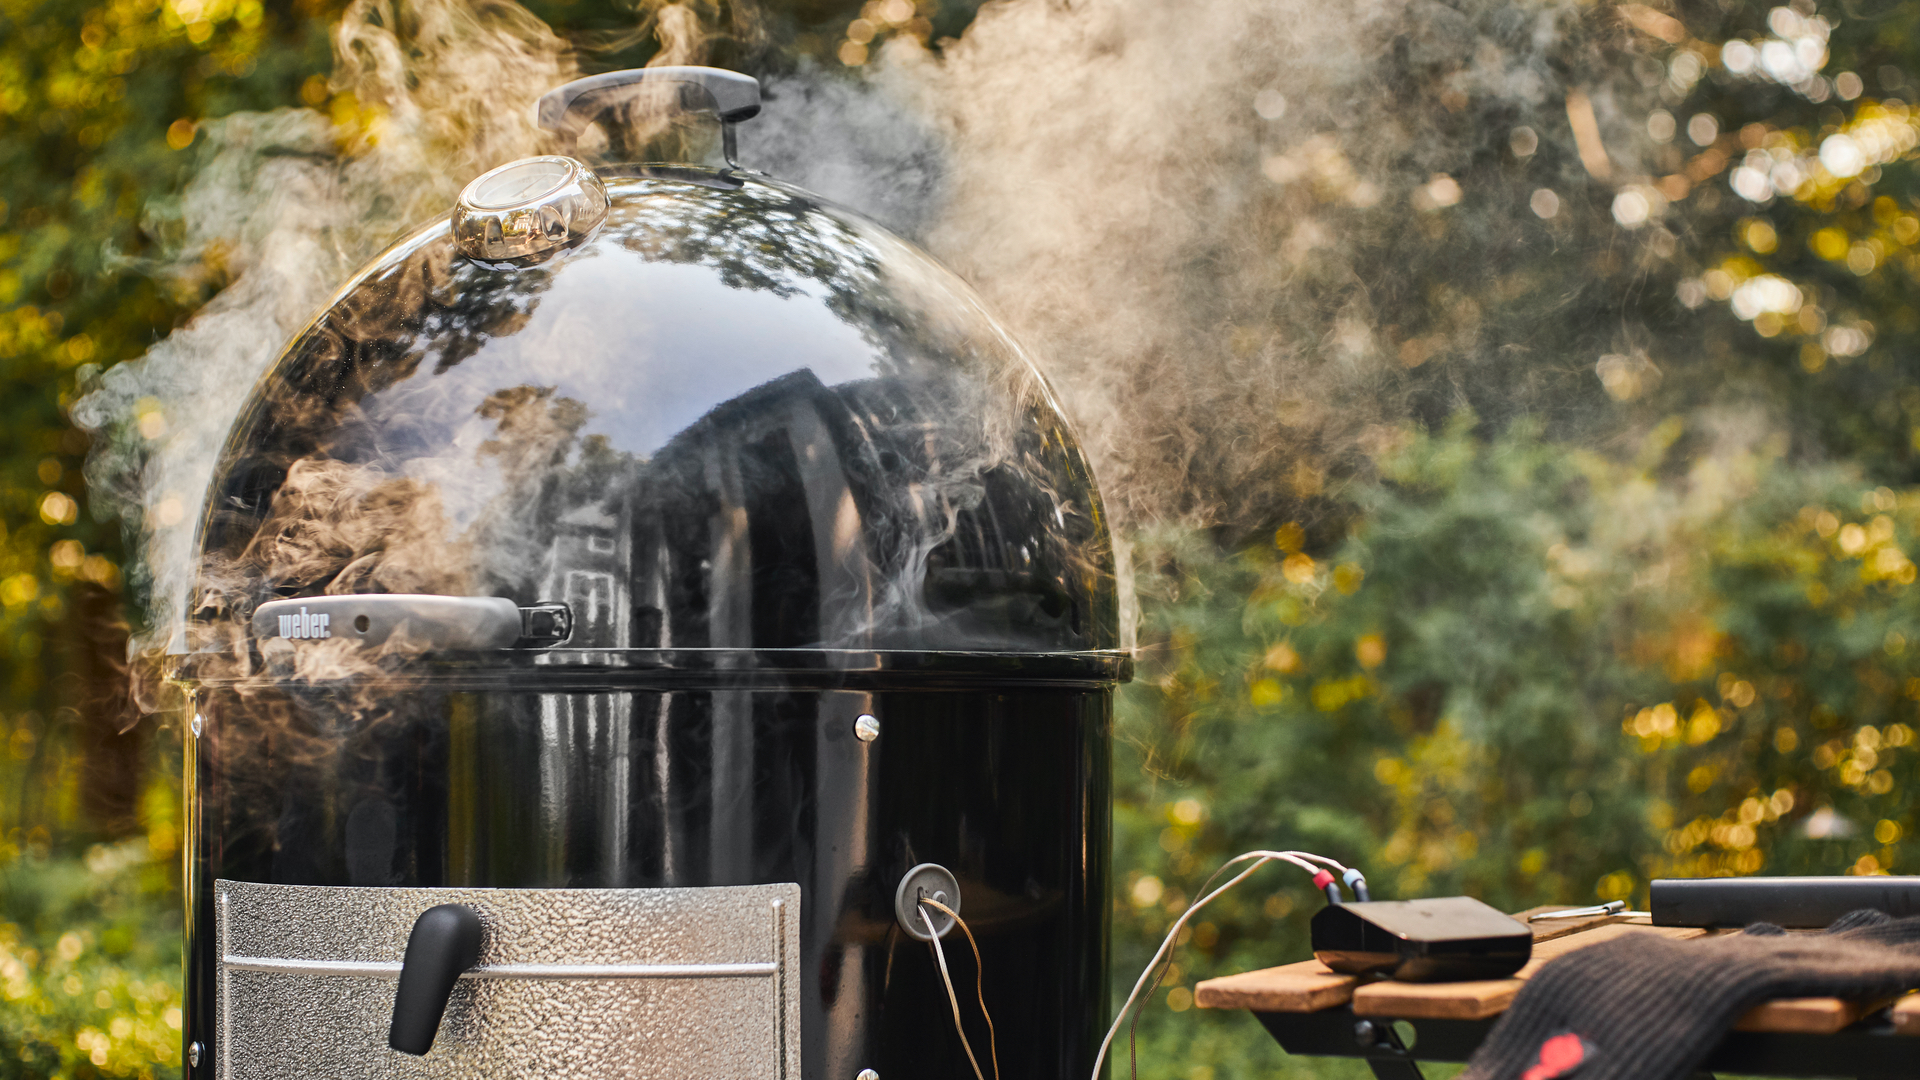 Best Smoker 2021 Charcoal Gas Pellet And Electric Smoking Grills Are Pleased To Meat You T3